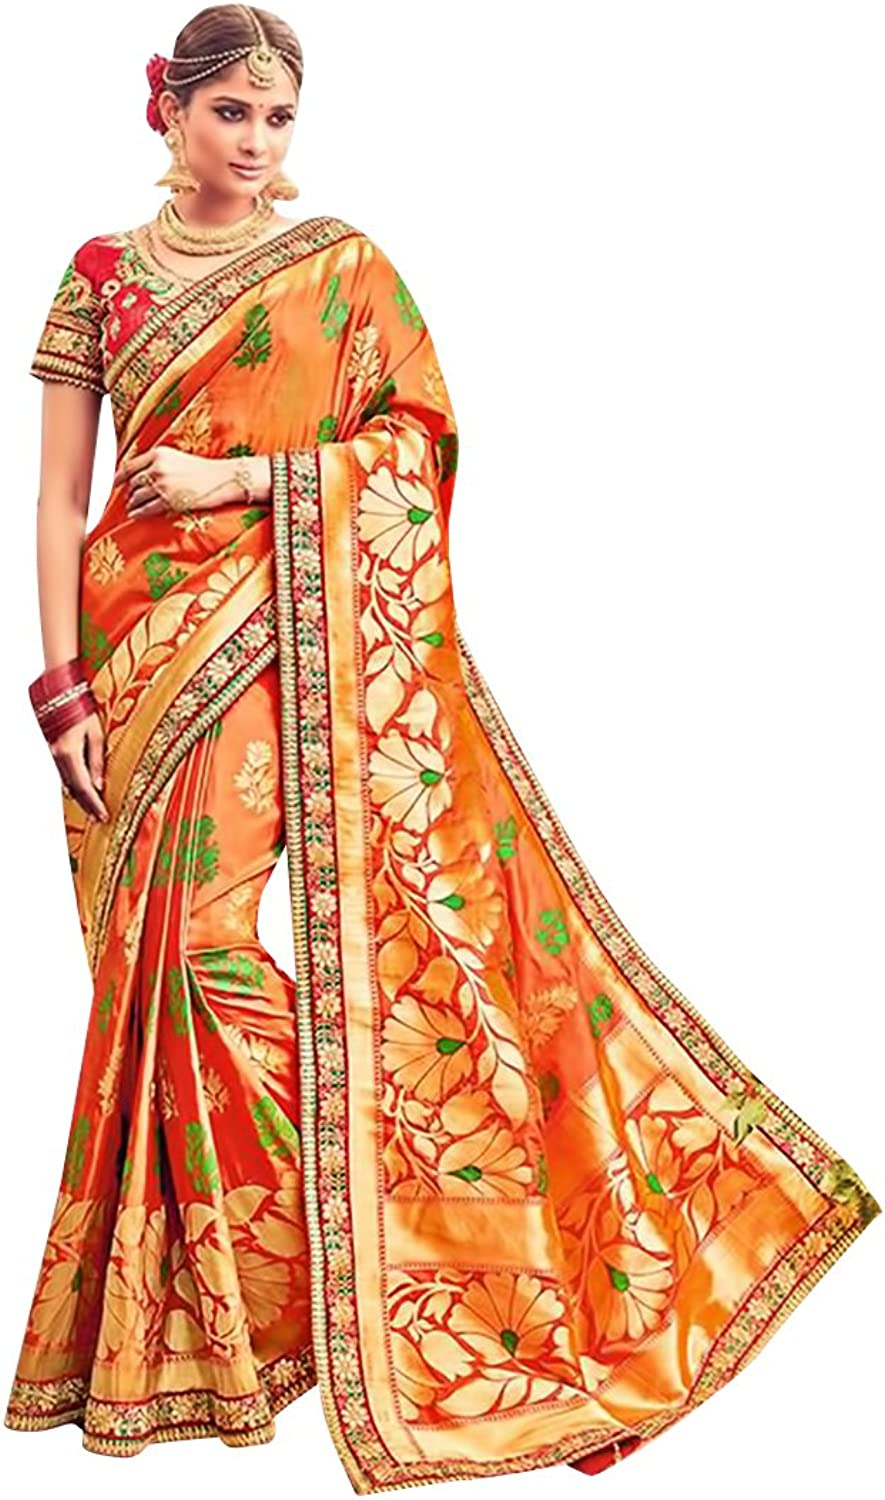 Bridal Silk Saree Sari New Launch Collection Blouse Wedding Party Wear Ceremony Women Muslim Eid Kaftan